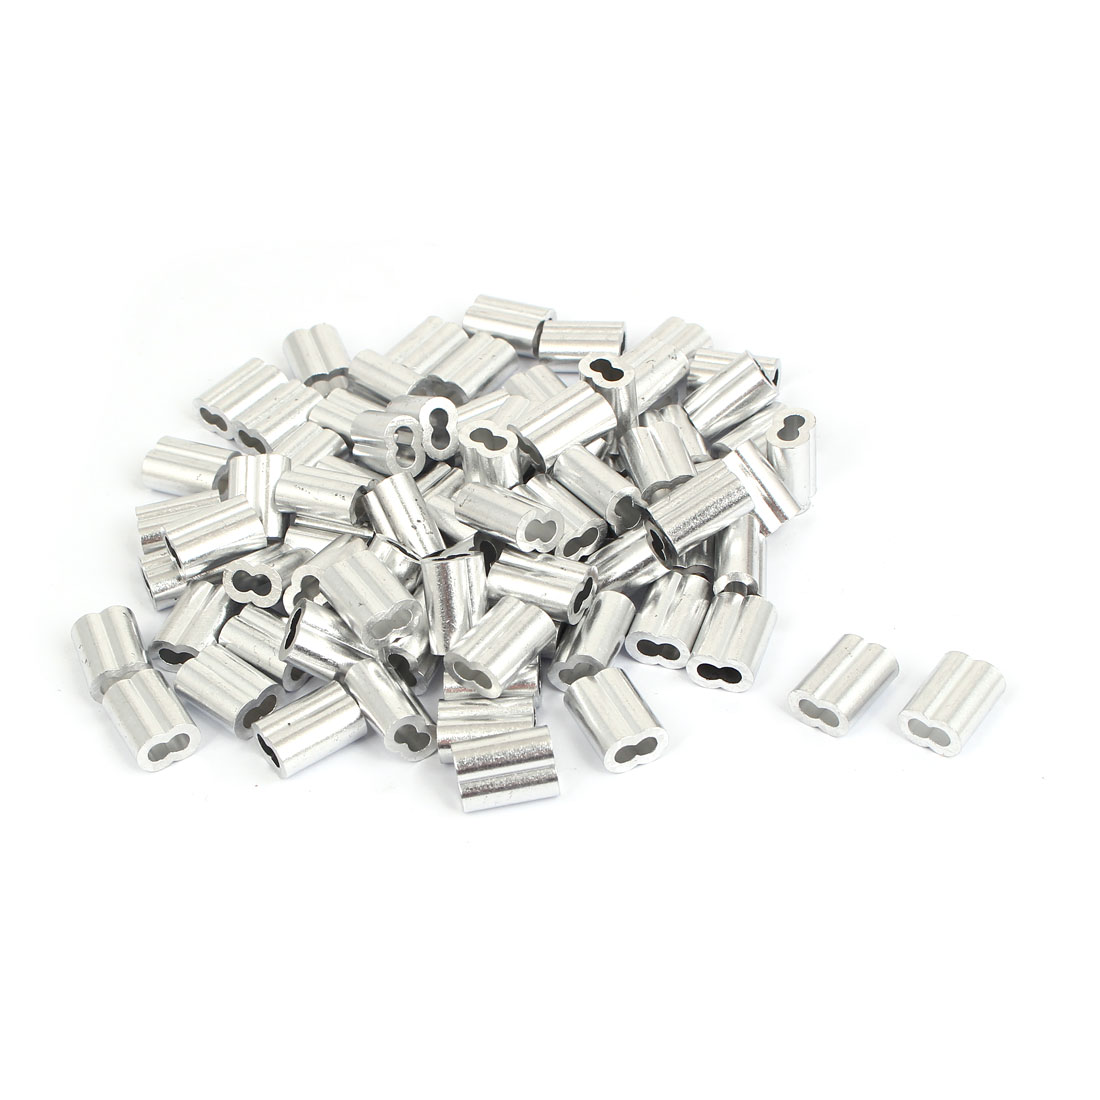 "Aluminum Sleeves Silver Tone 80 Pcs for 1/8"" Wire Rope"